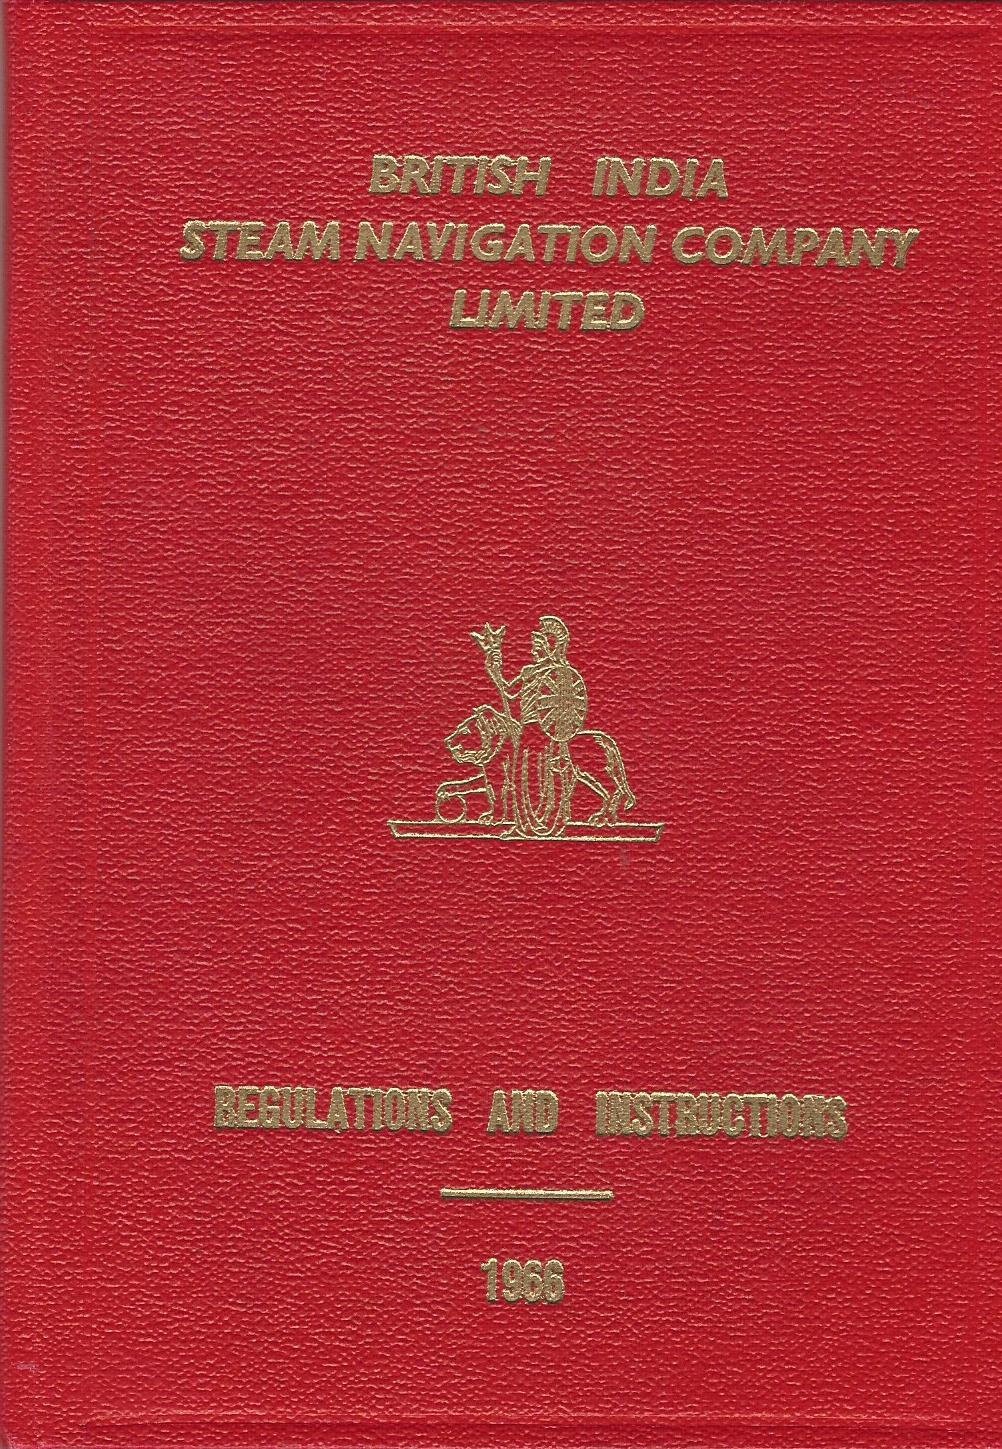 Image for British India Steam Navigation Company Limited: Regulations and Instructions 1966.